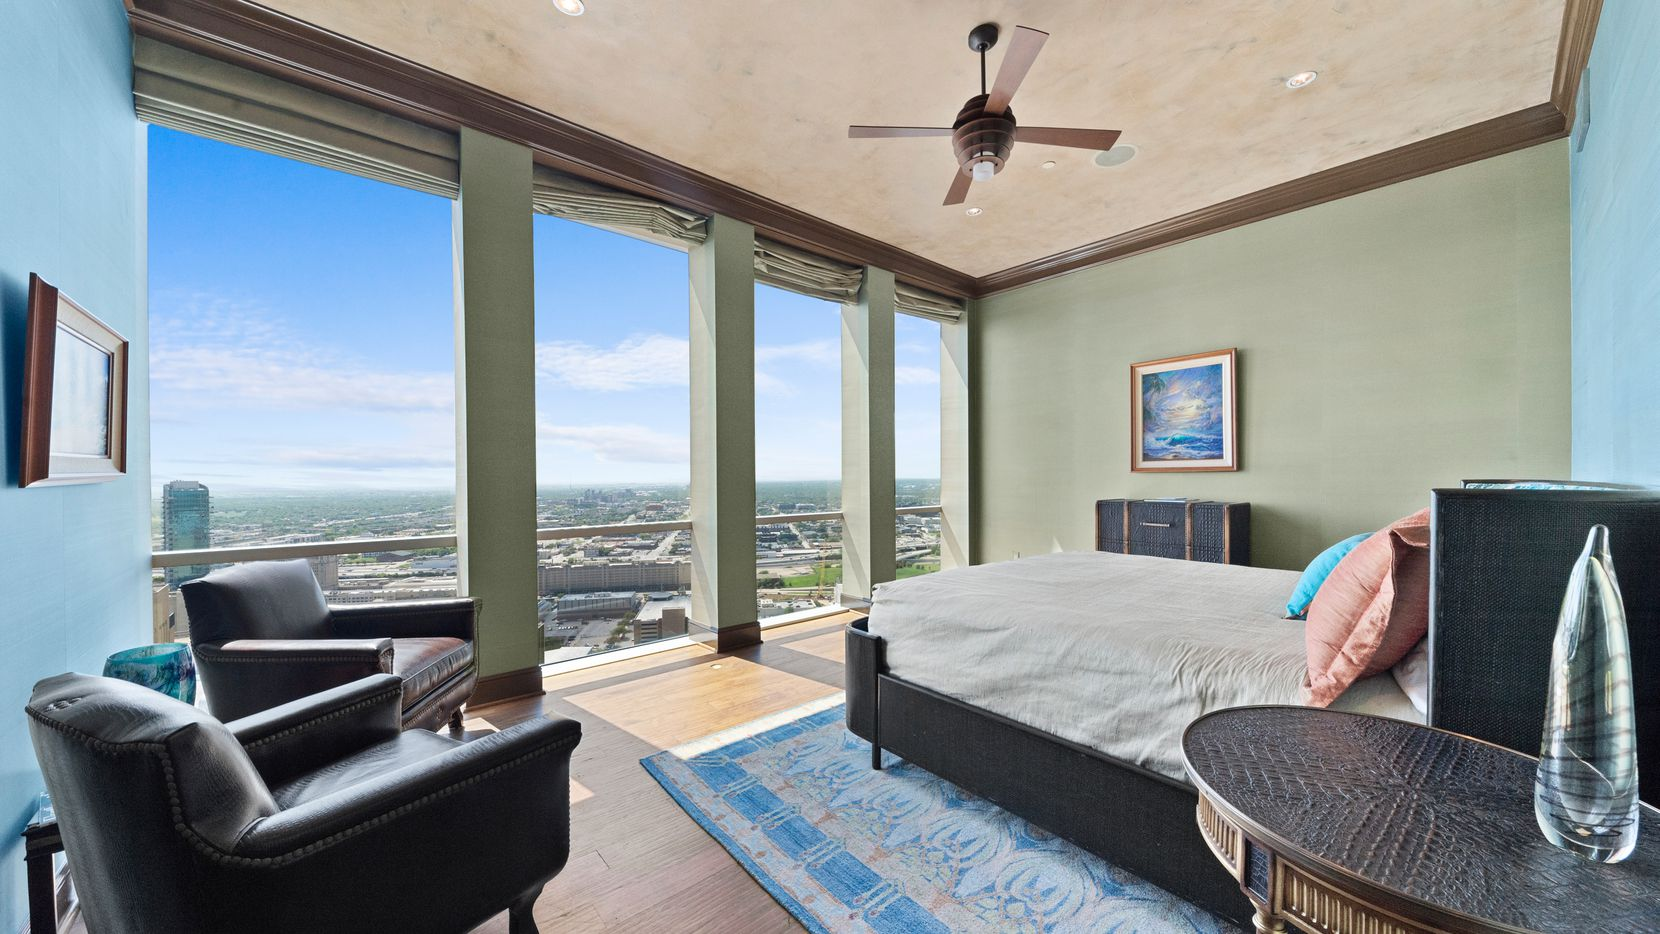 A look at the property at 500 Throckmorton Street, Unit 3602 in Fort Worth.